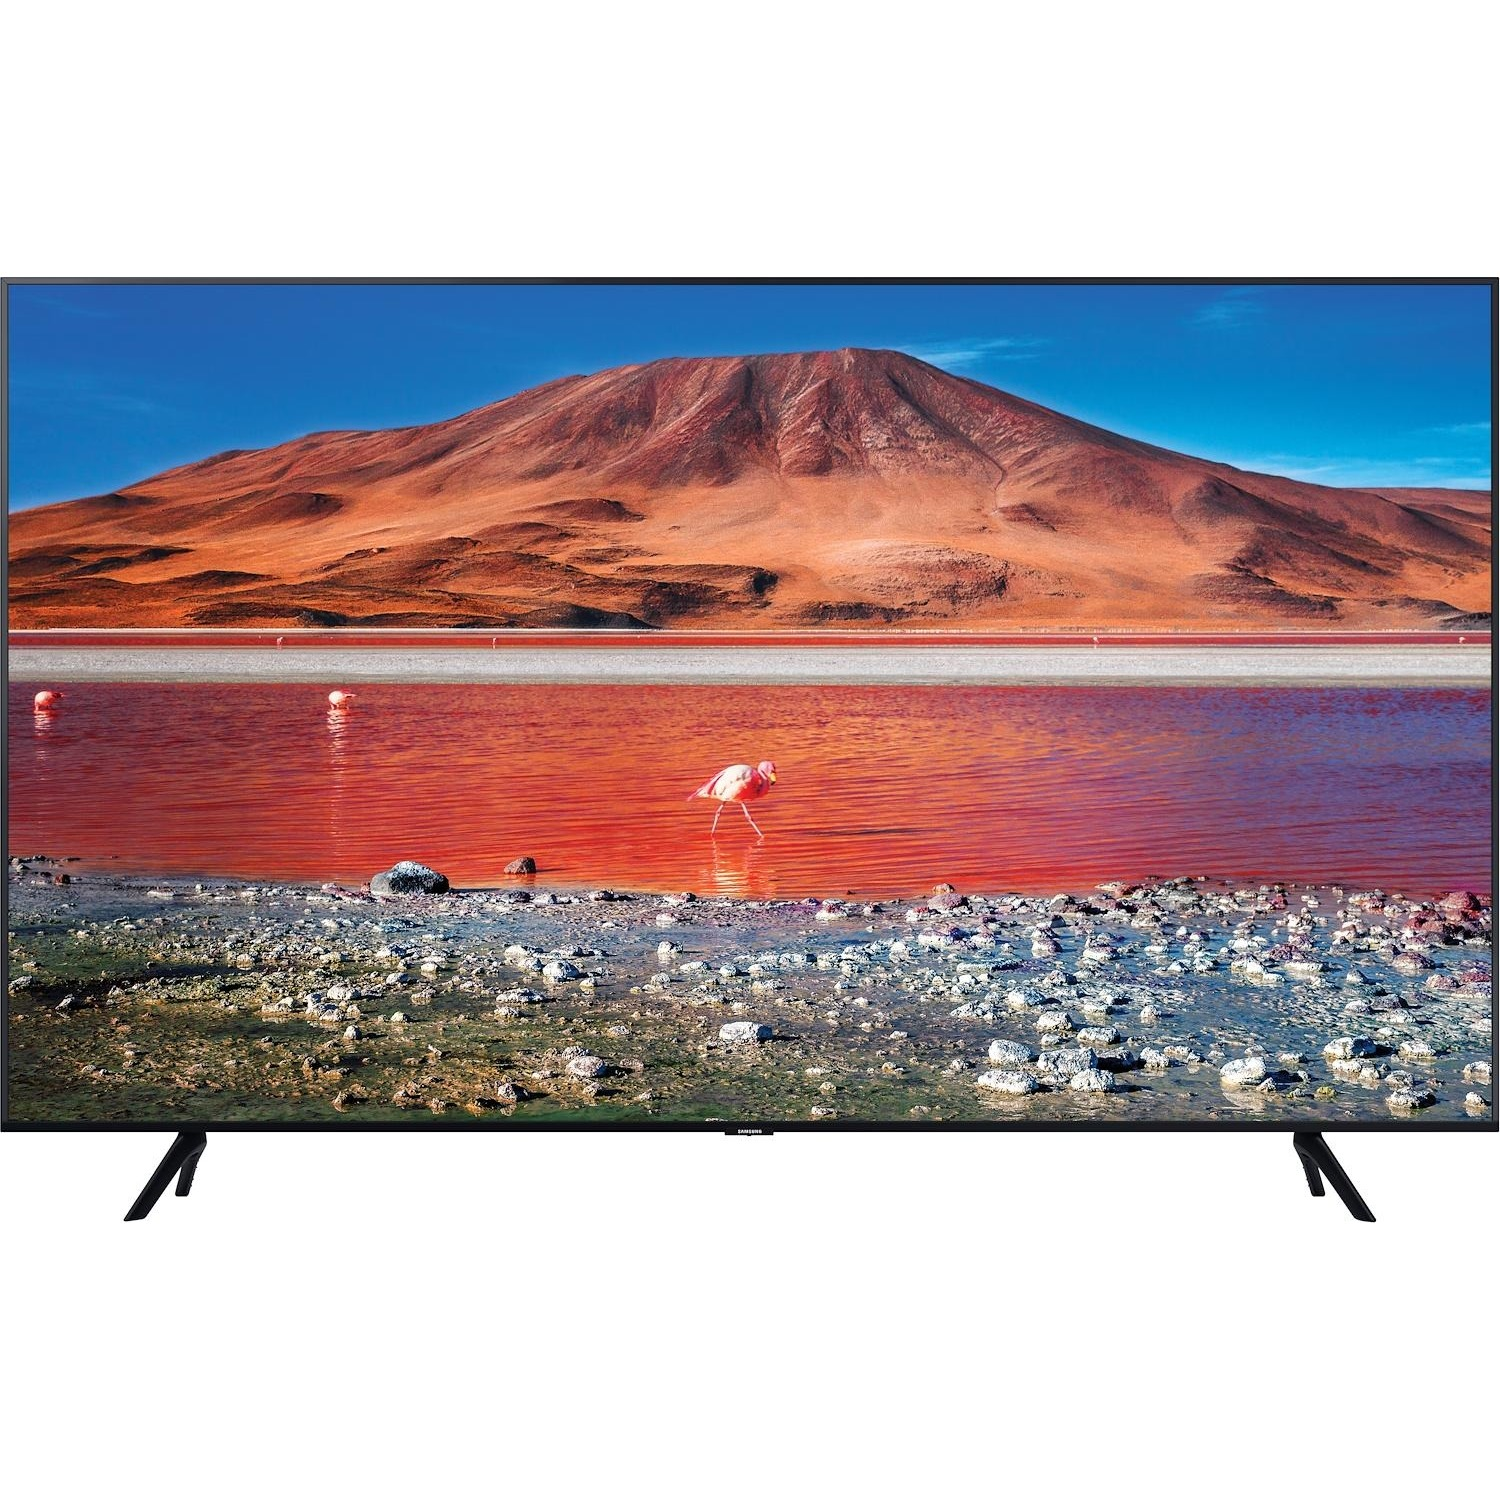 Immagine per TV LED Smart 4K UHD Samsung 43TU7070 da DIMOStore